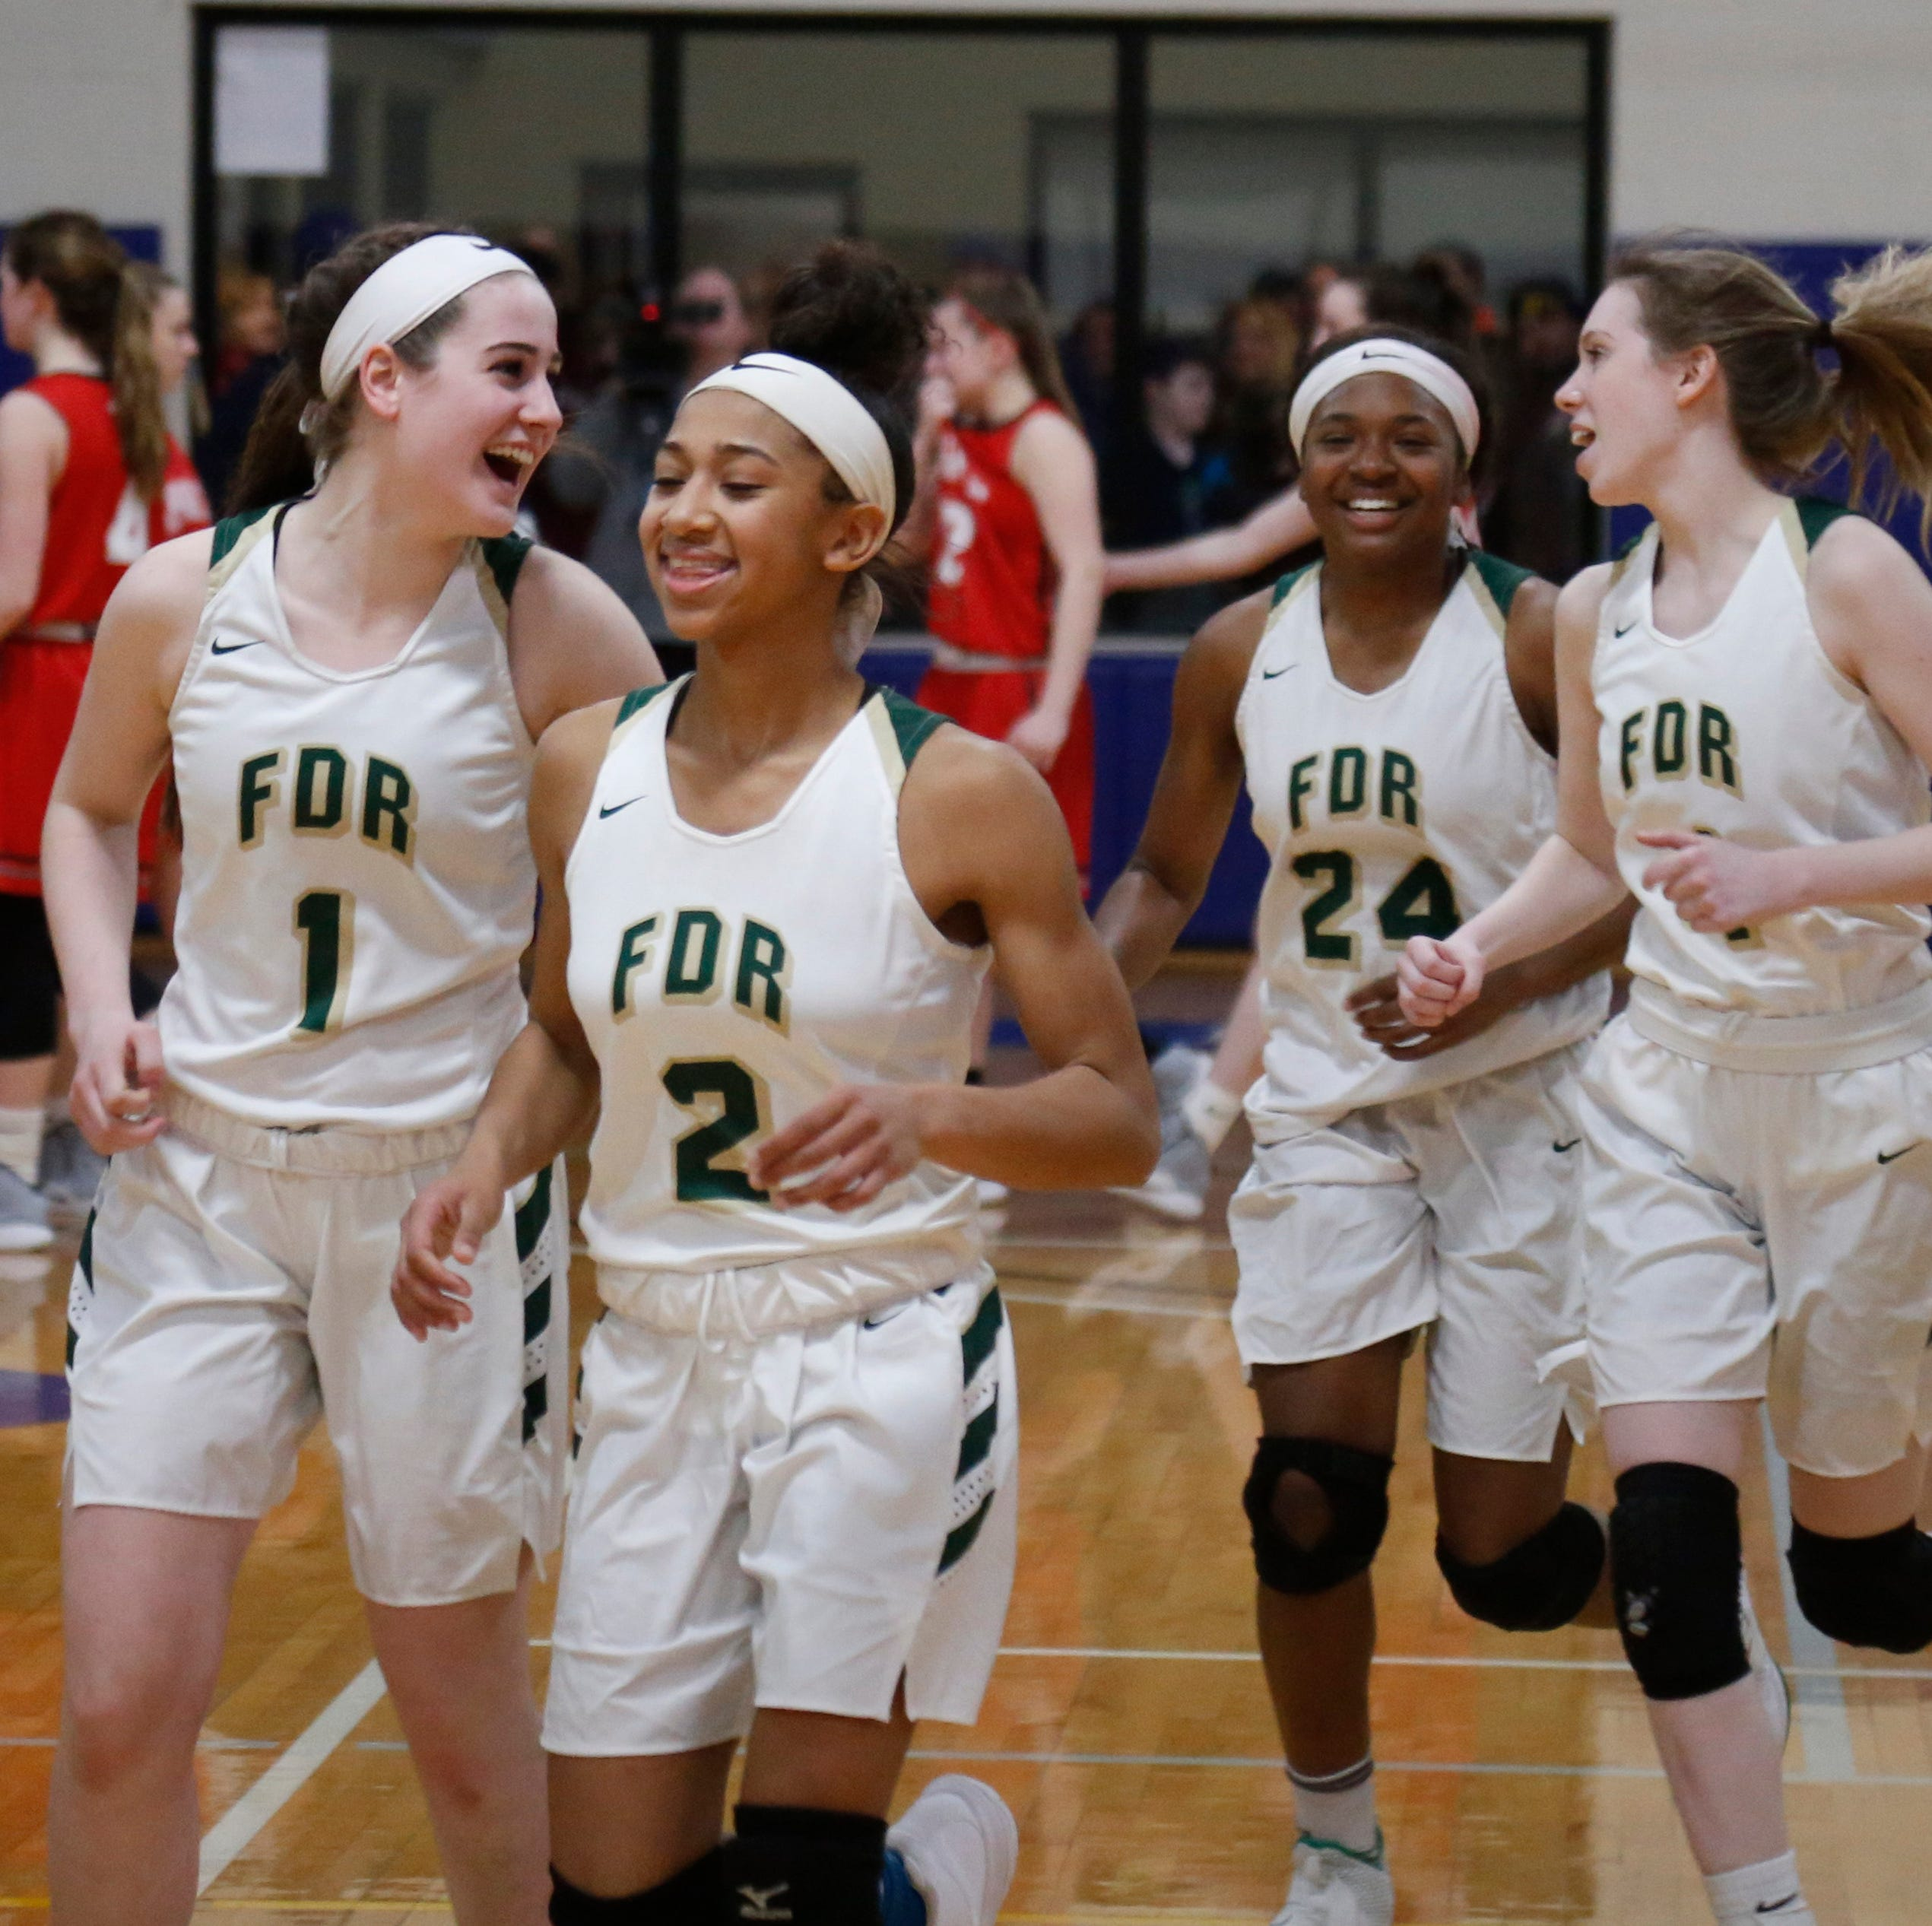 'Energetic' FDR pushes past Tappan Zee, regional final next